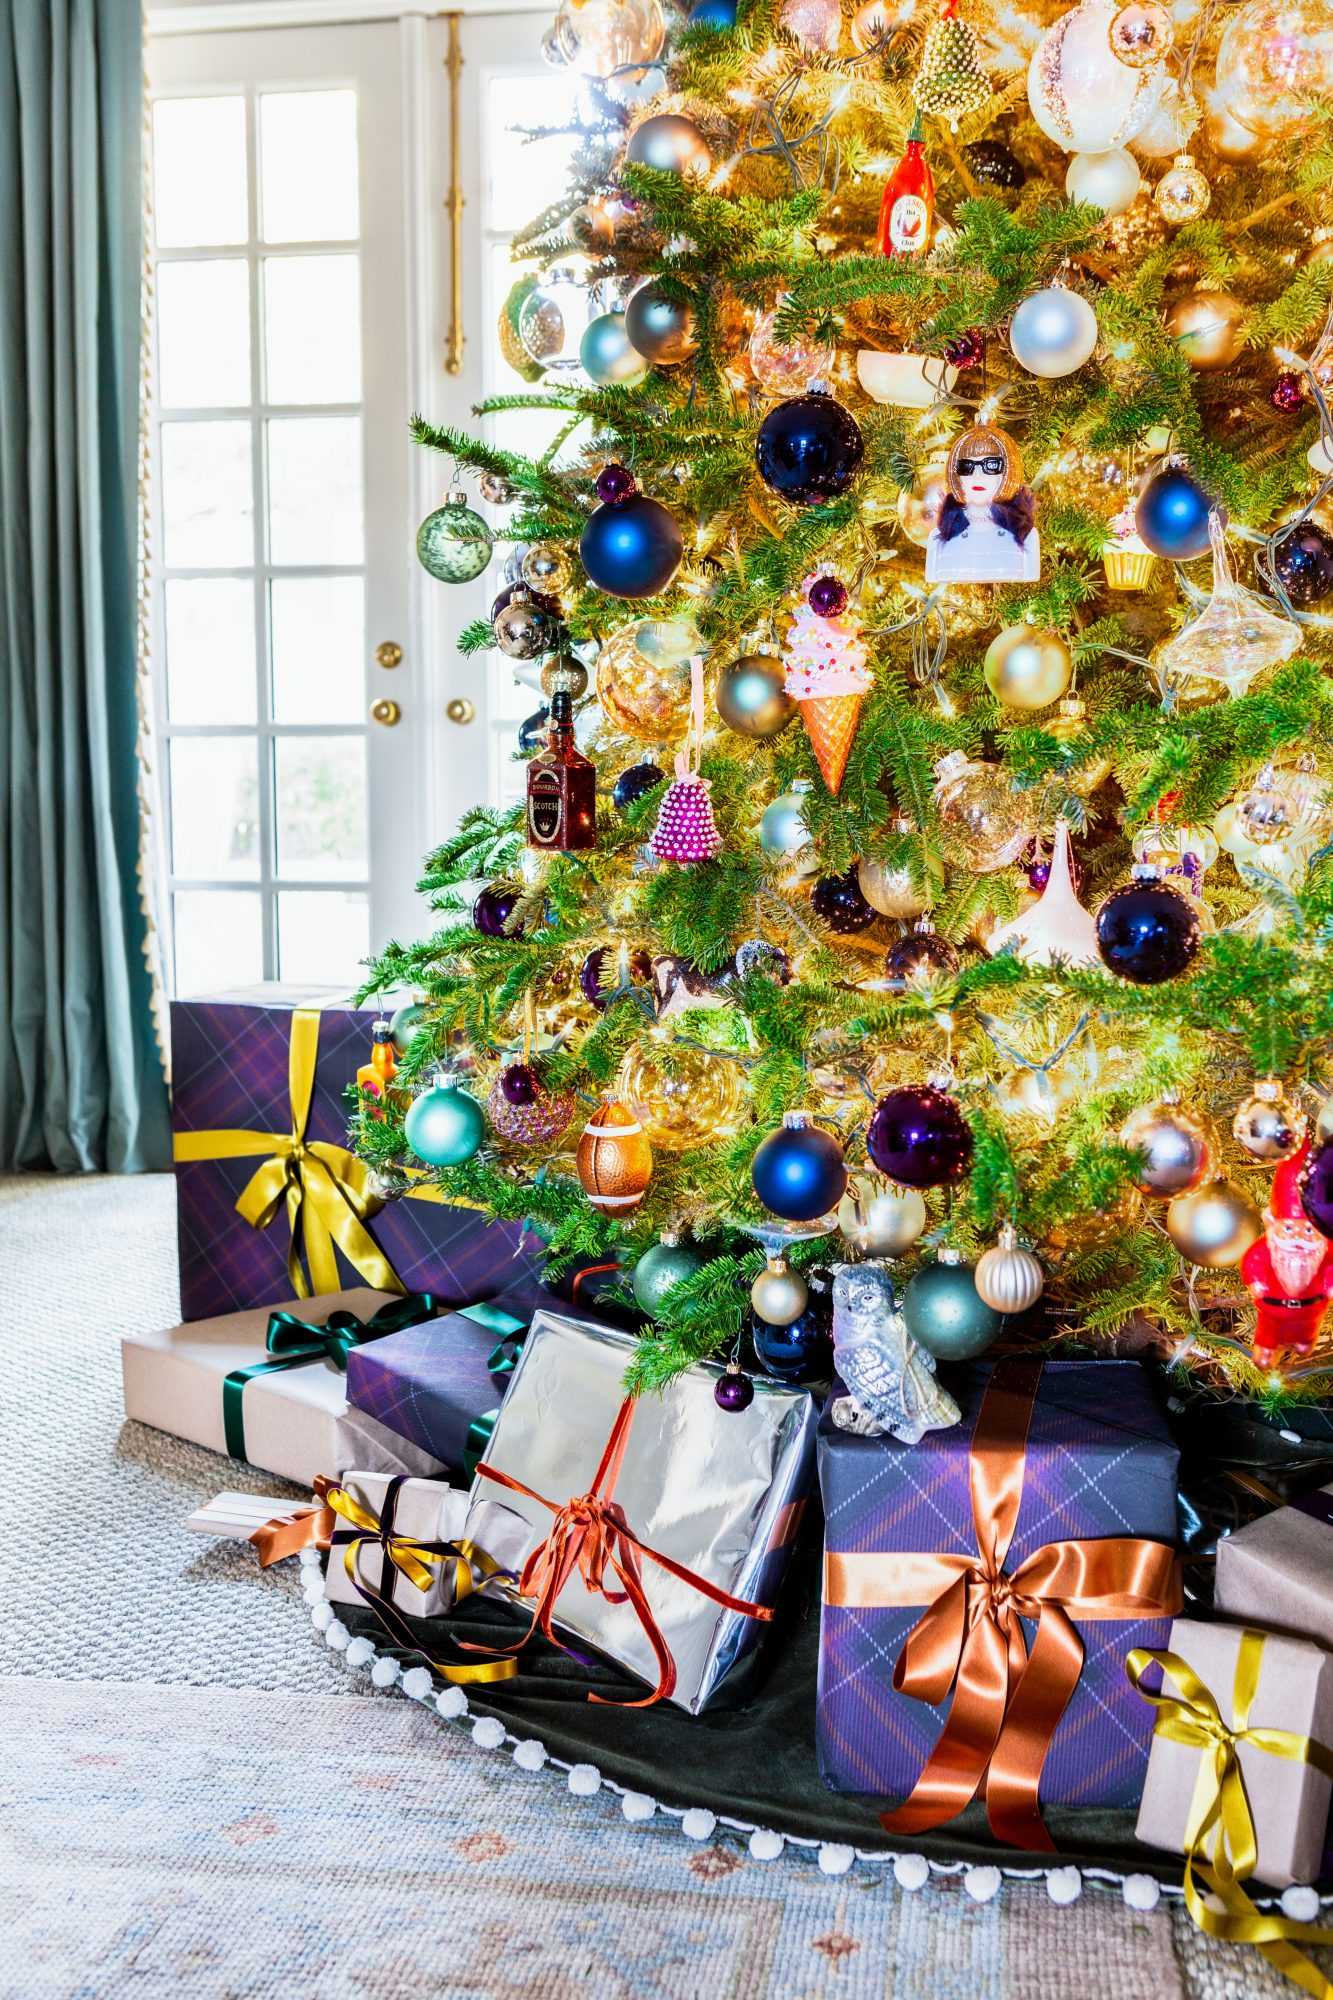 Jewel tone Christmas tree ornaments and packages